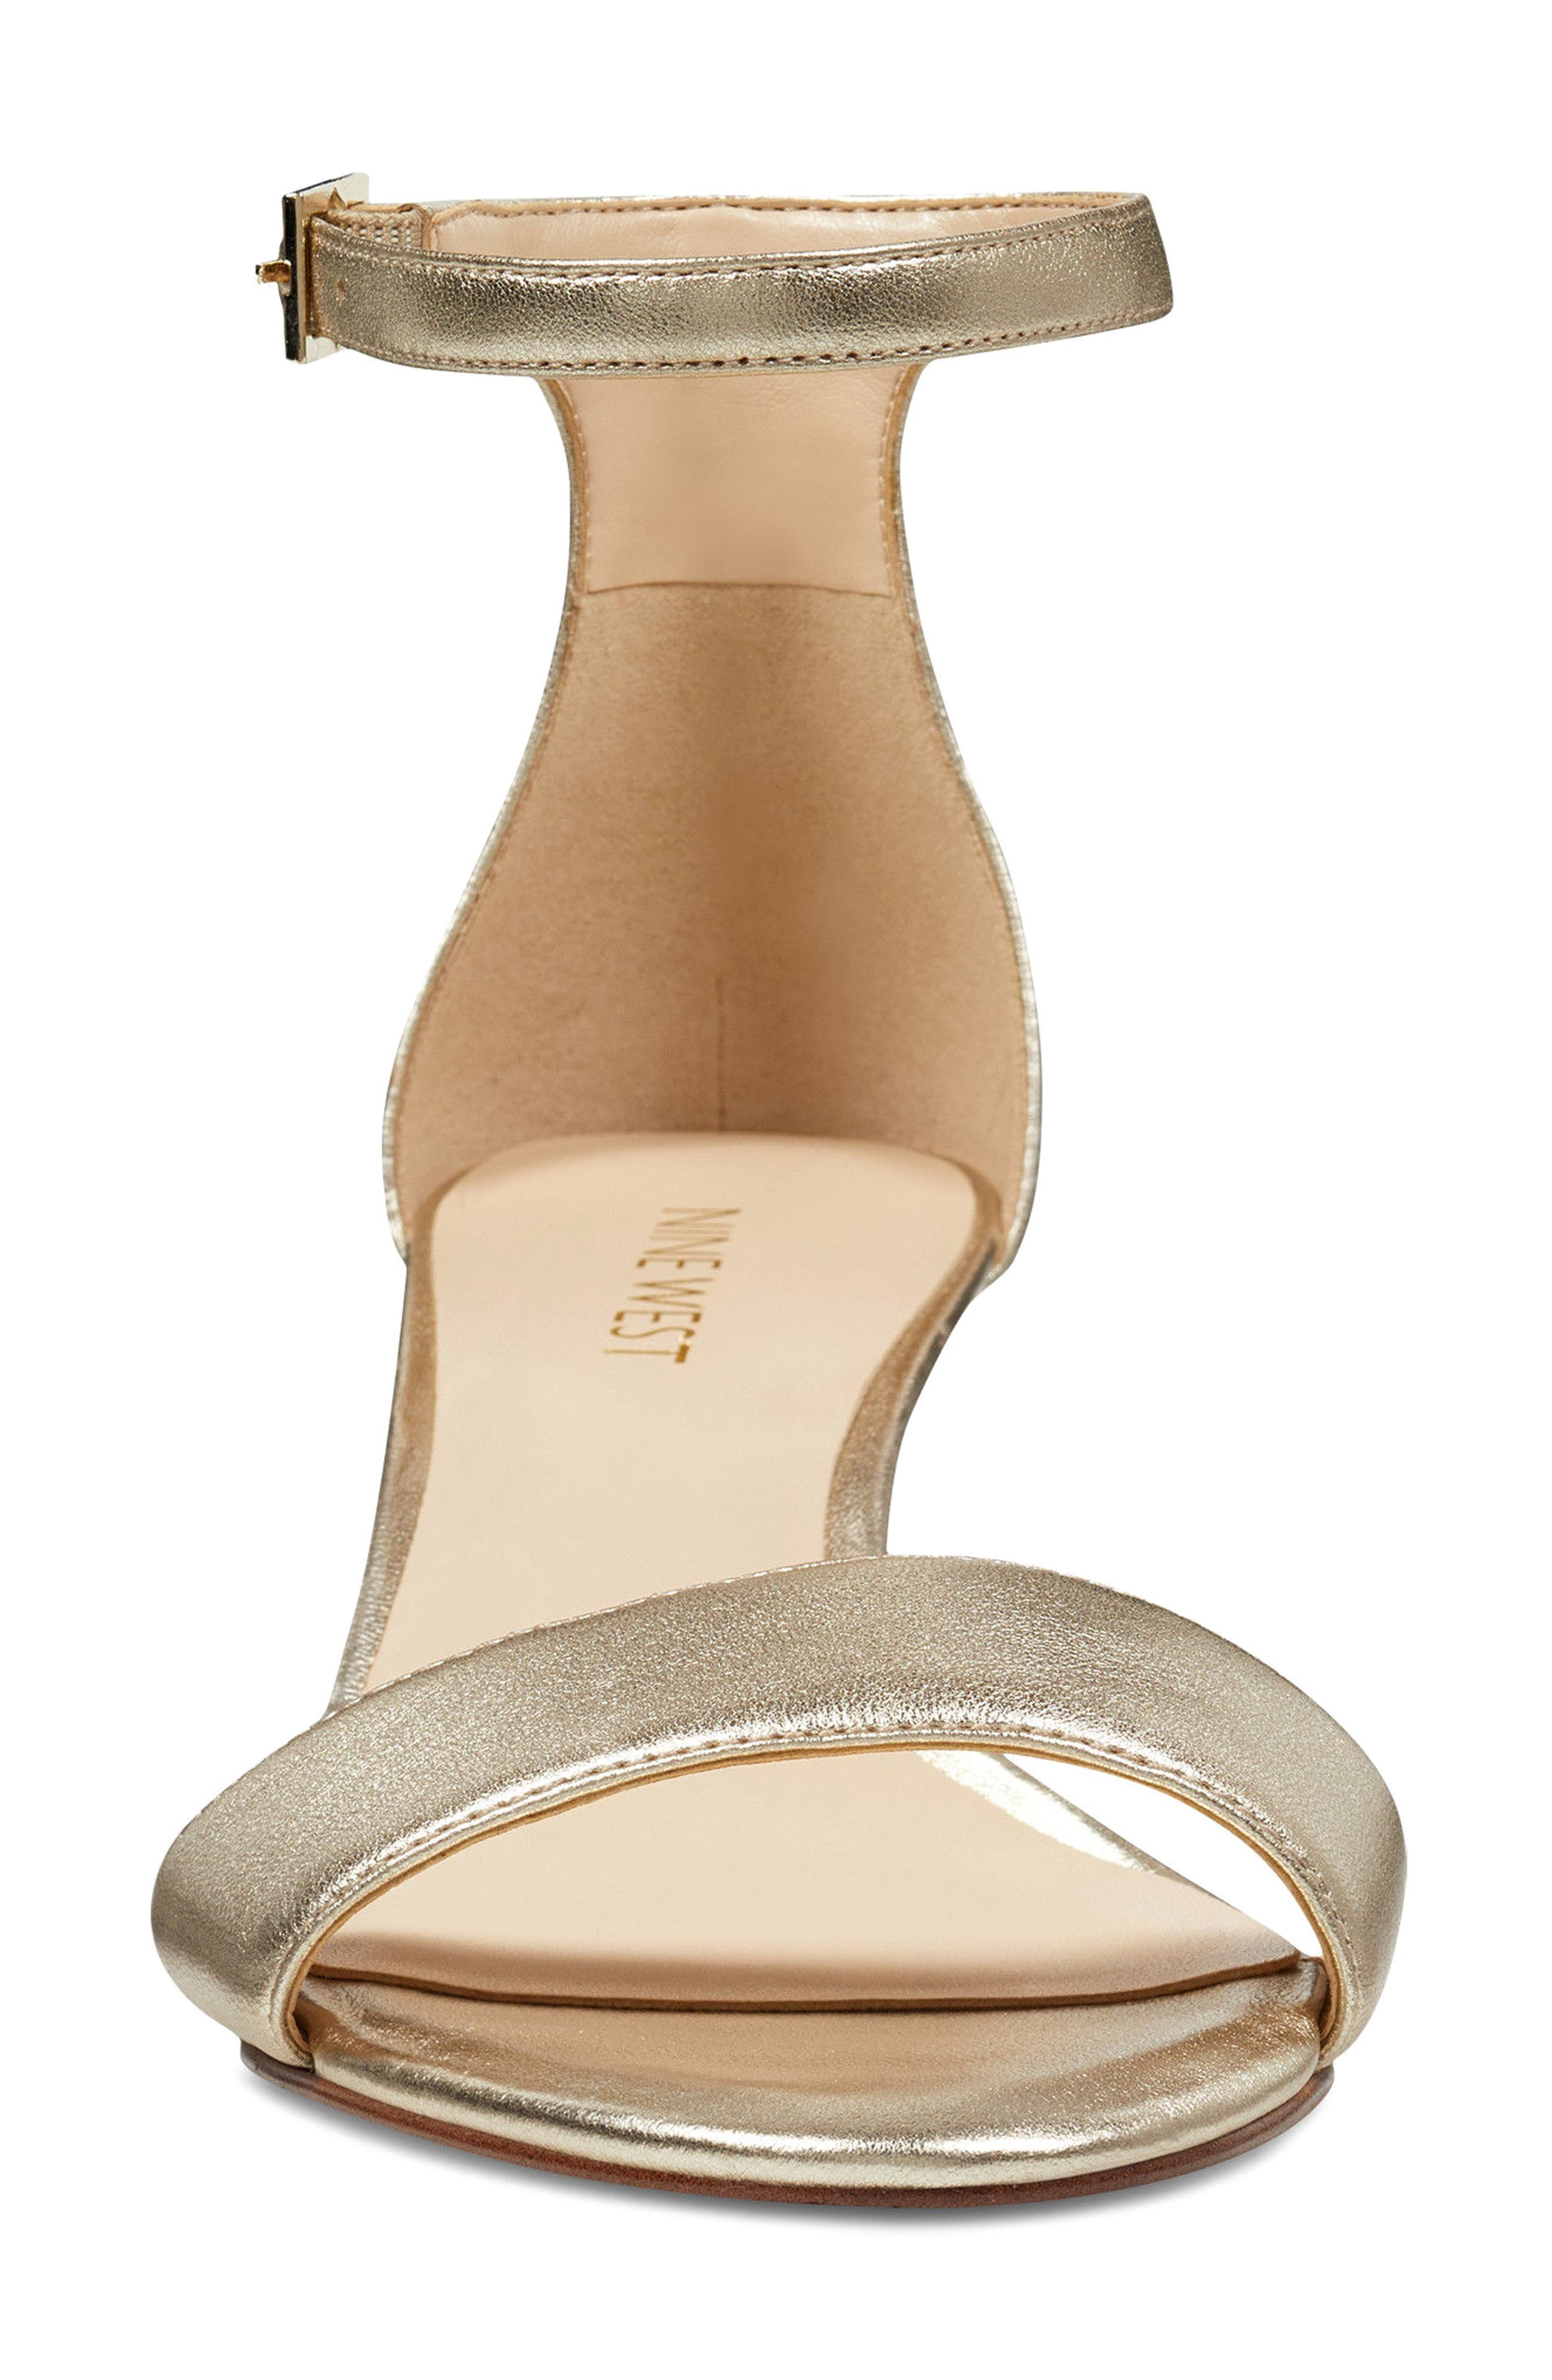 'Leisa' Ankle Strap Sandal,                             Alternate thumbnail 4, color,                             711